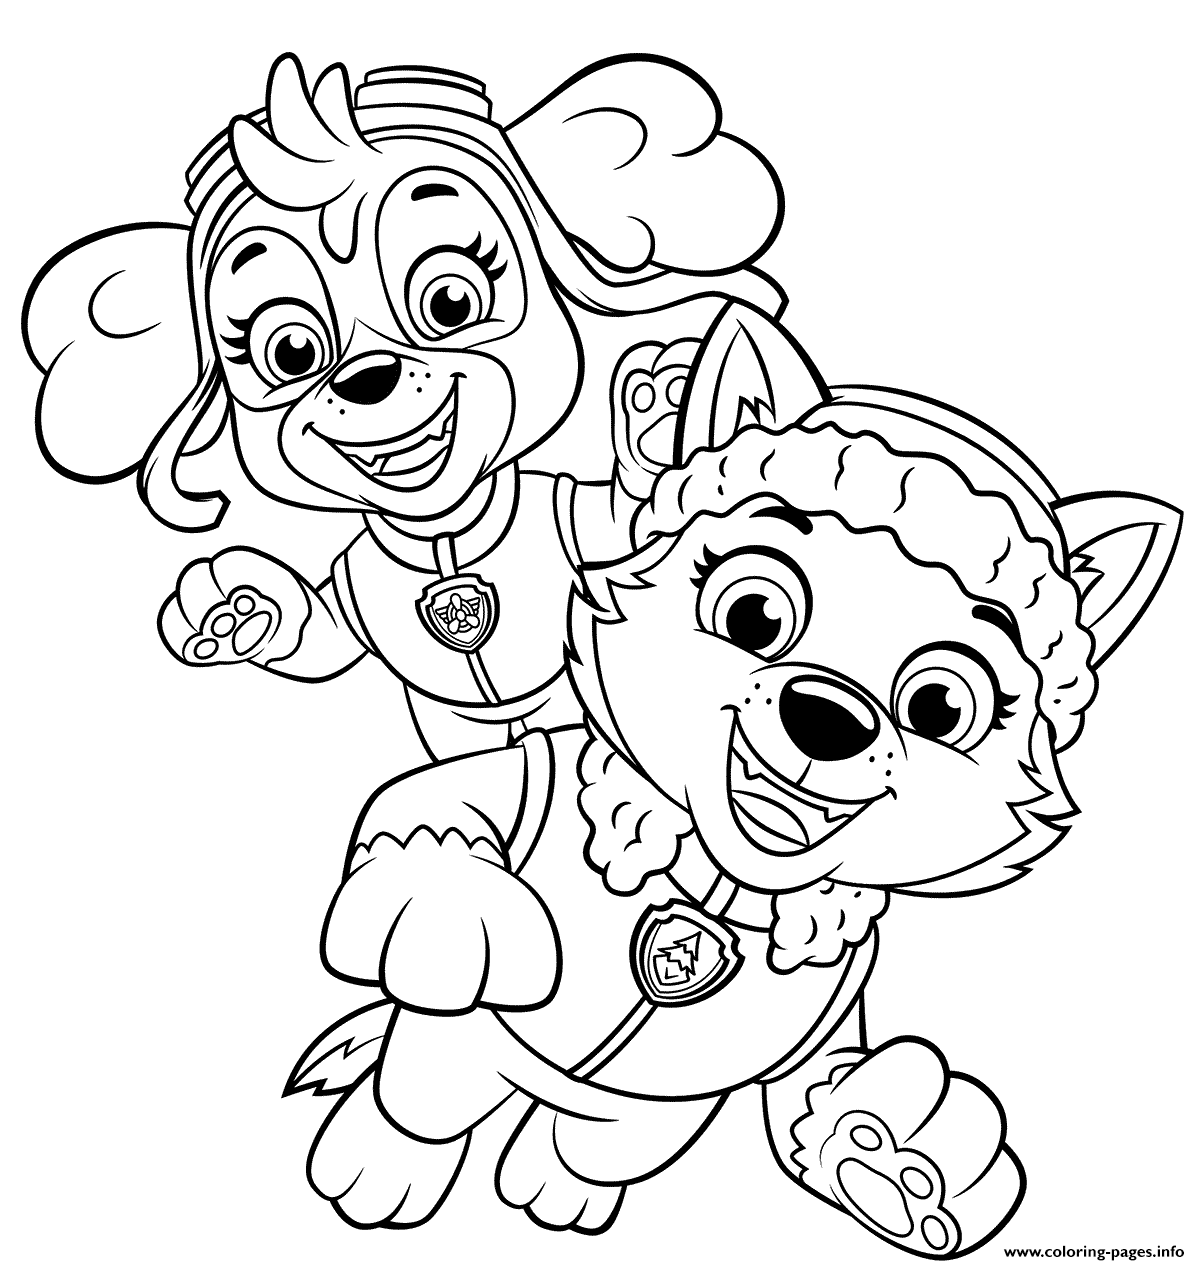 Print Skye And Everest Coloring Pages In 2021 Paw Patrol Coloring Pages Paw Patrol Coloring Skye Paw Patrol